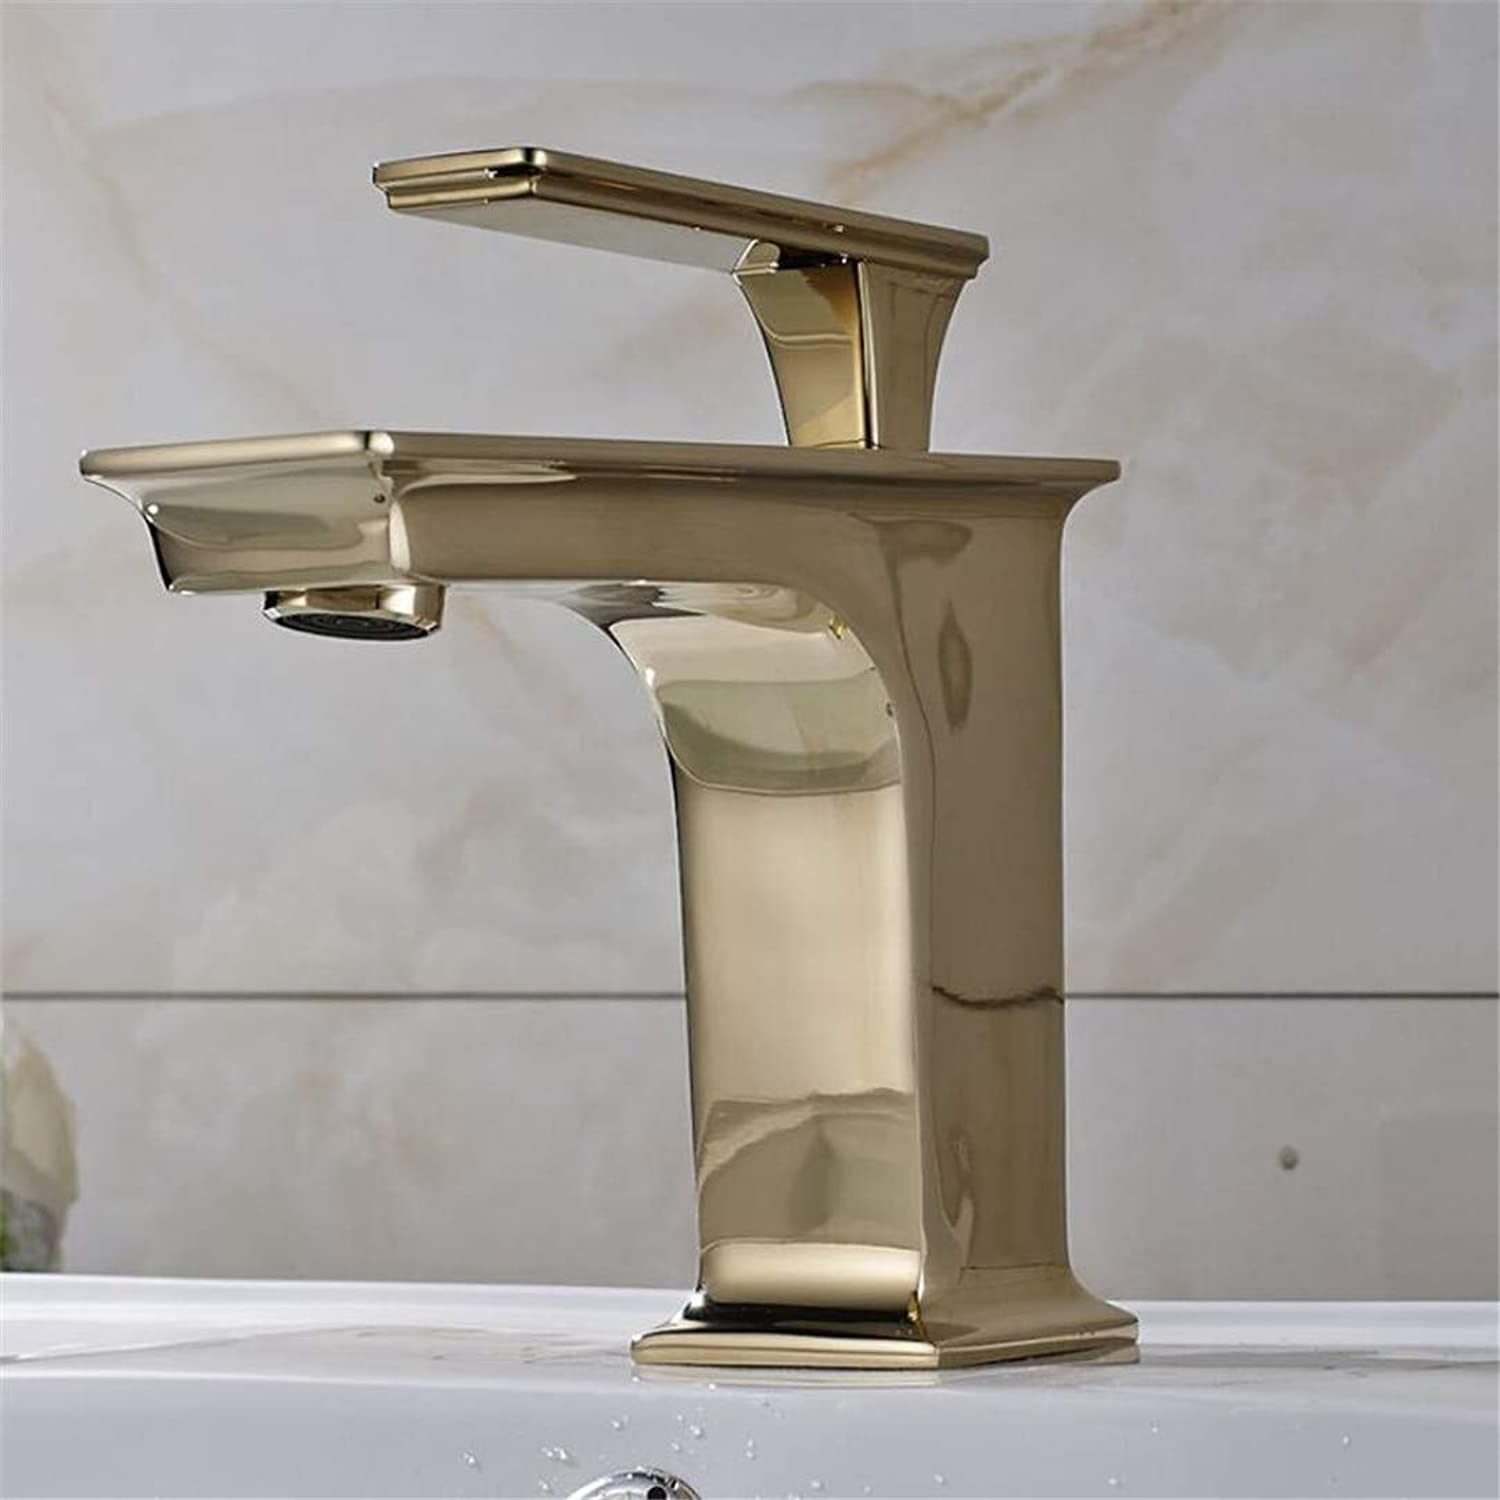 Faucet Washbasin Mixer High Quality Solid Brass gold Polished Bathroom Sink Faucet Mixer Tap Crane